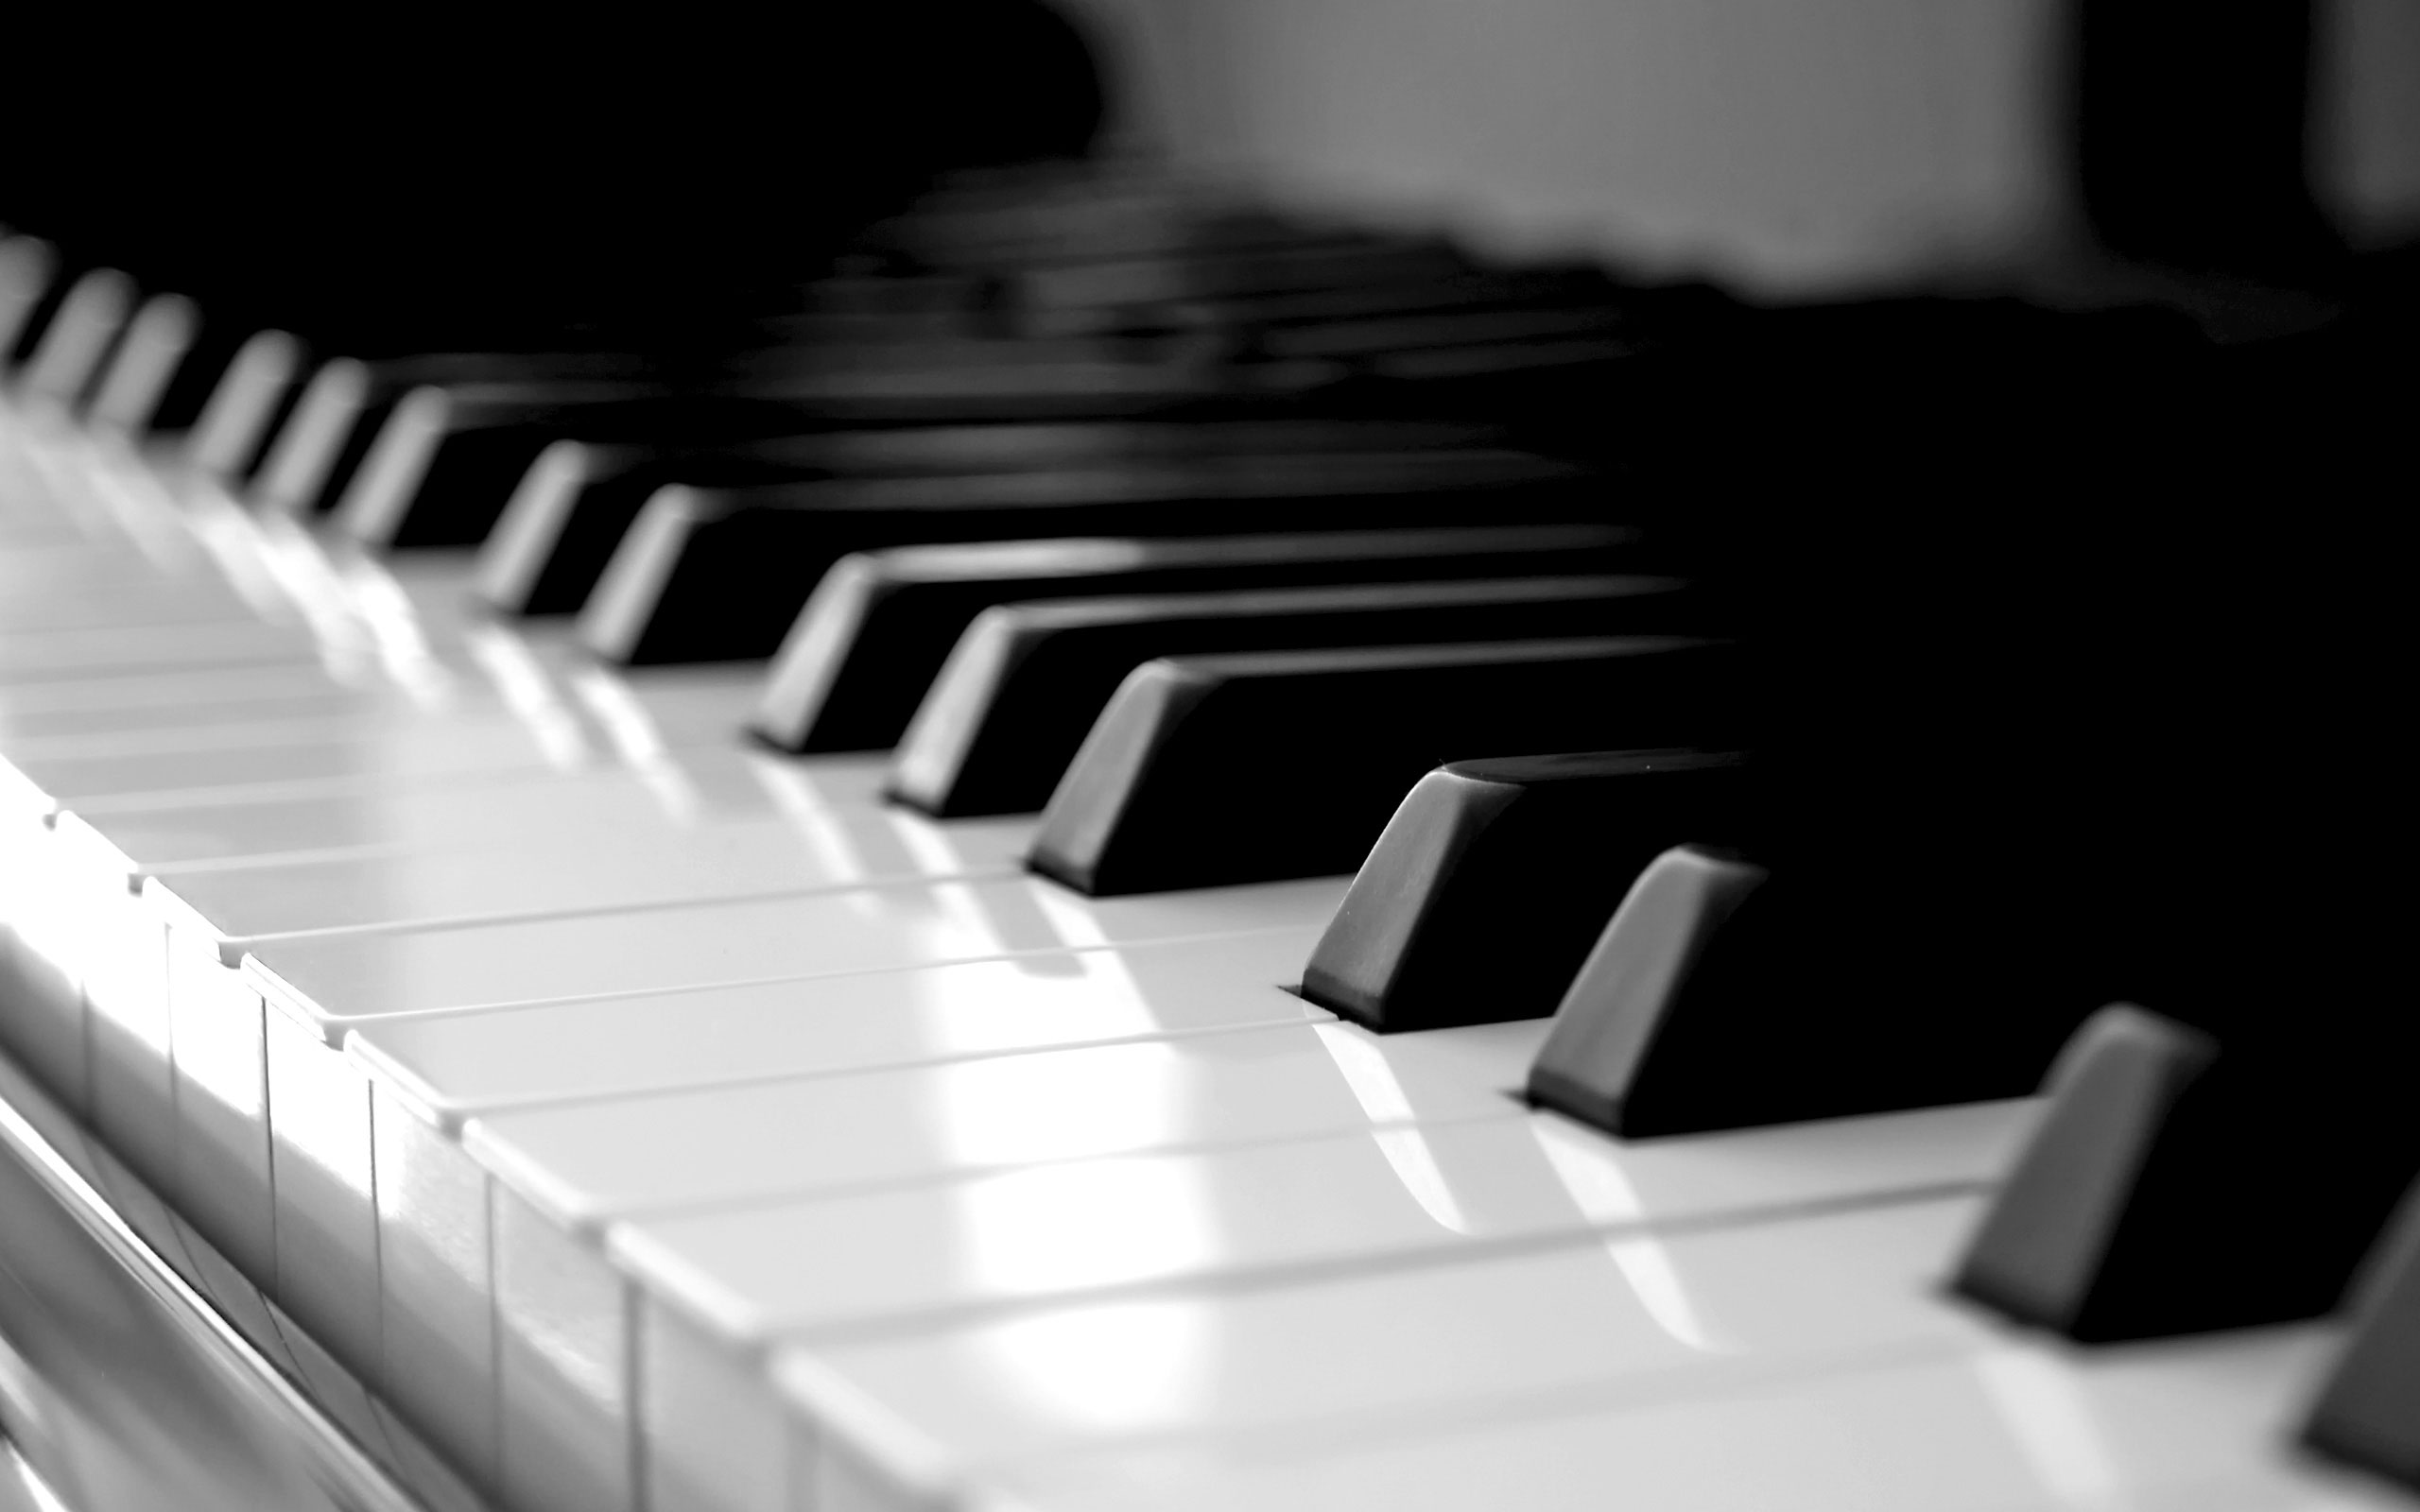 Piano wallpaper 2560x1600 59807 - Cool piano backgrounds ...